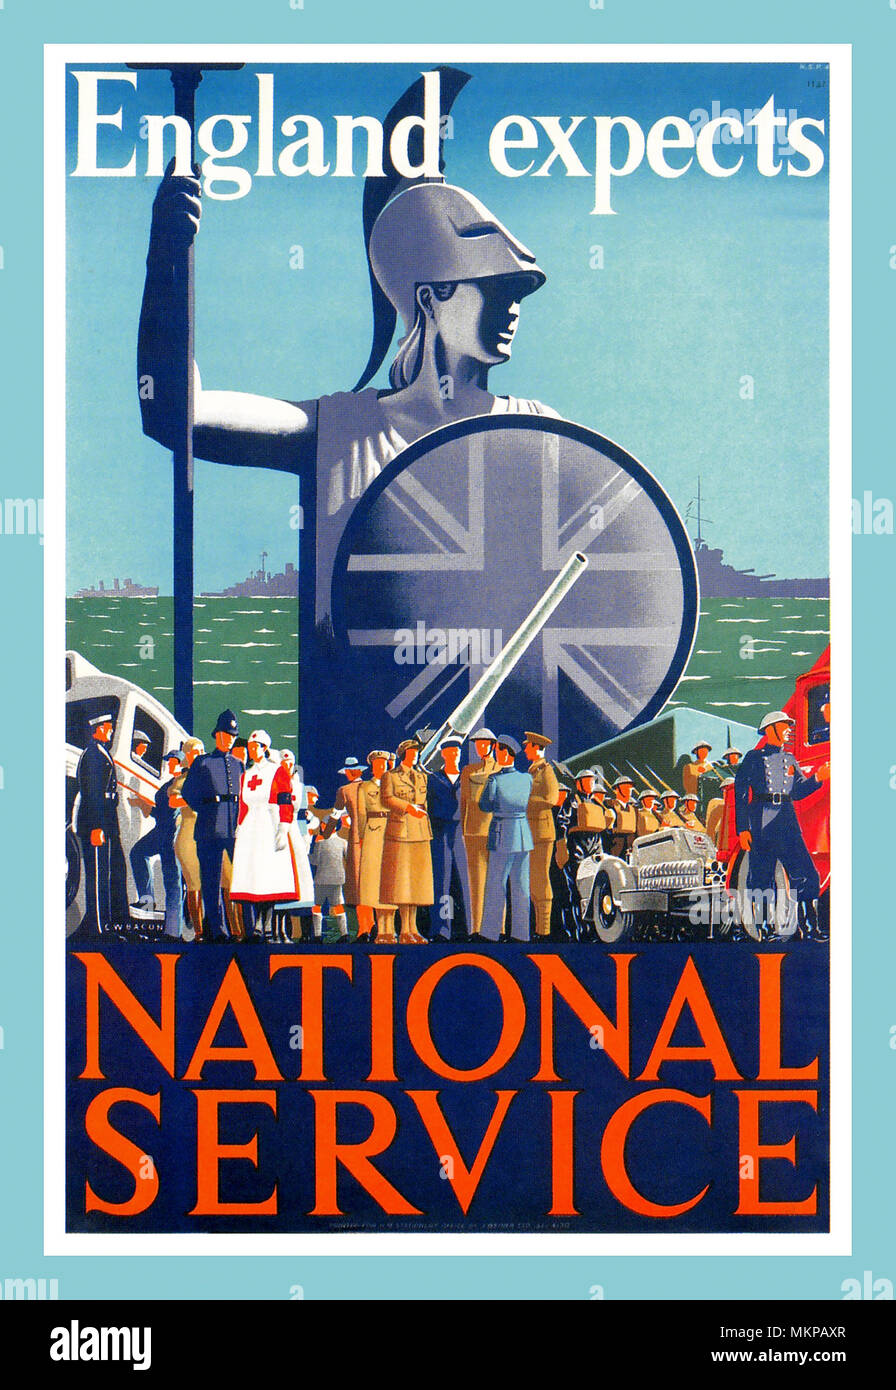 WW2 Vintage Propaganda Recruitment Poster 1939 ENGLAND EXPECTS NATIONAL SERVICE - Stock Image